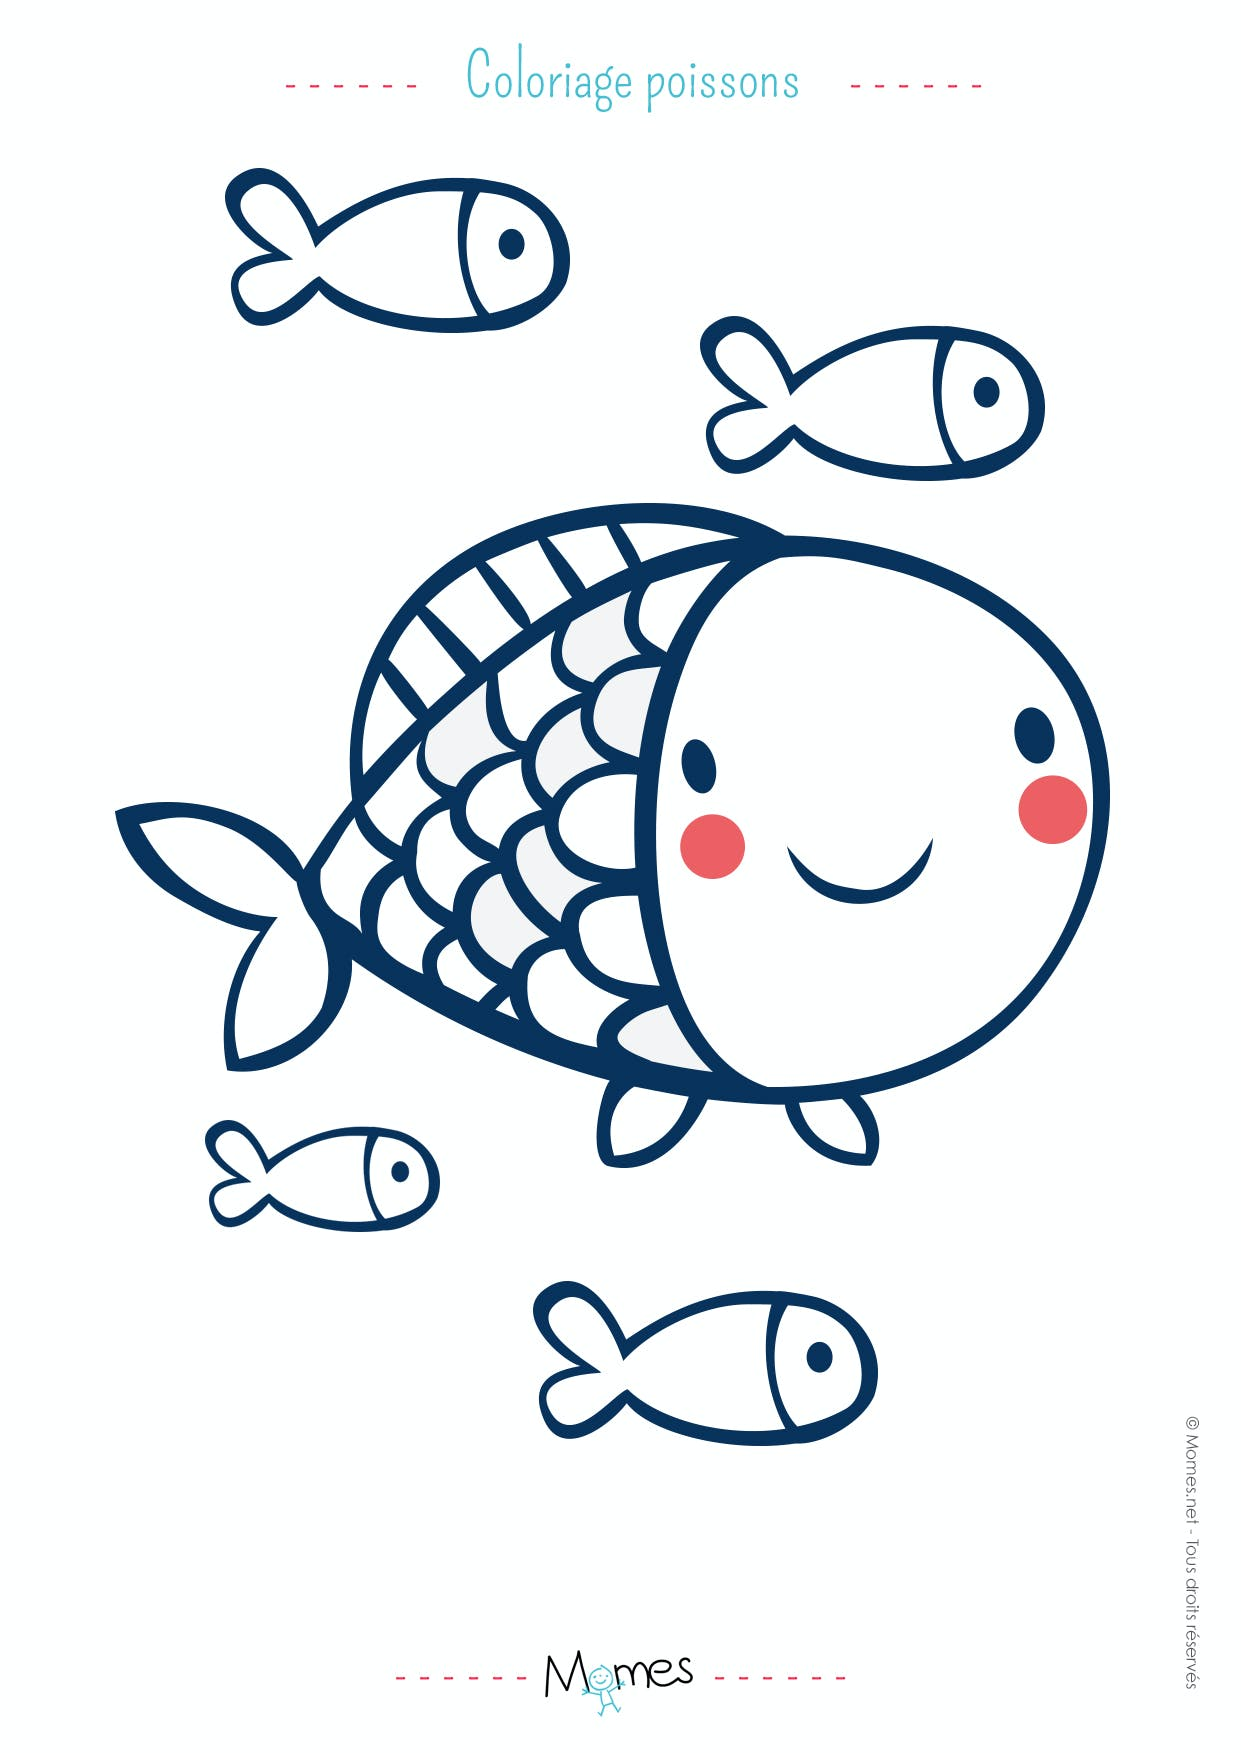 Coloriage poisson d 39 avril - Poisson dessin ...